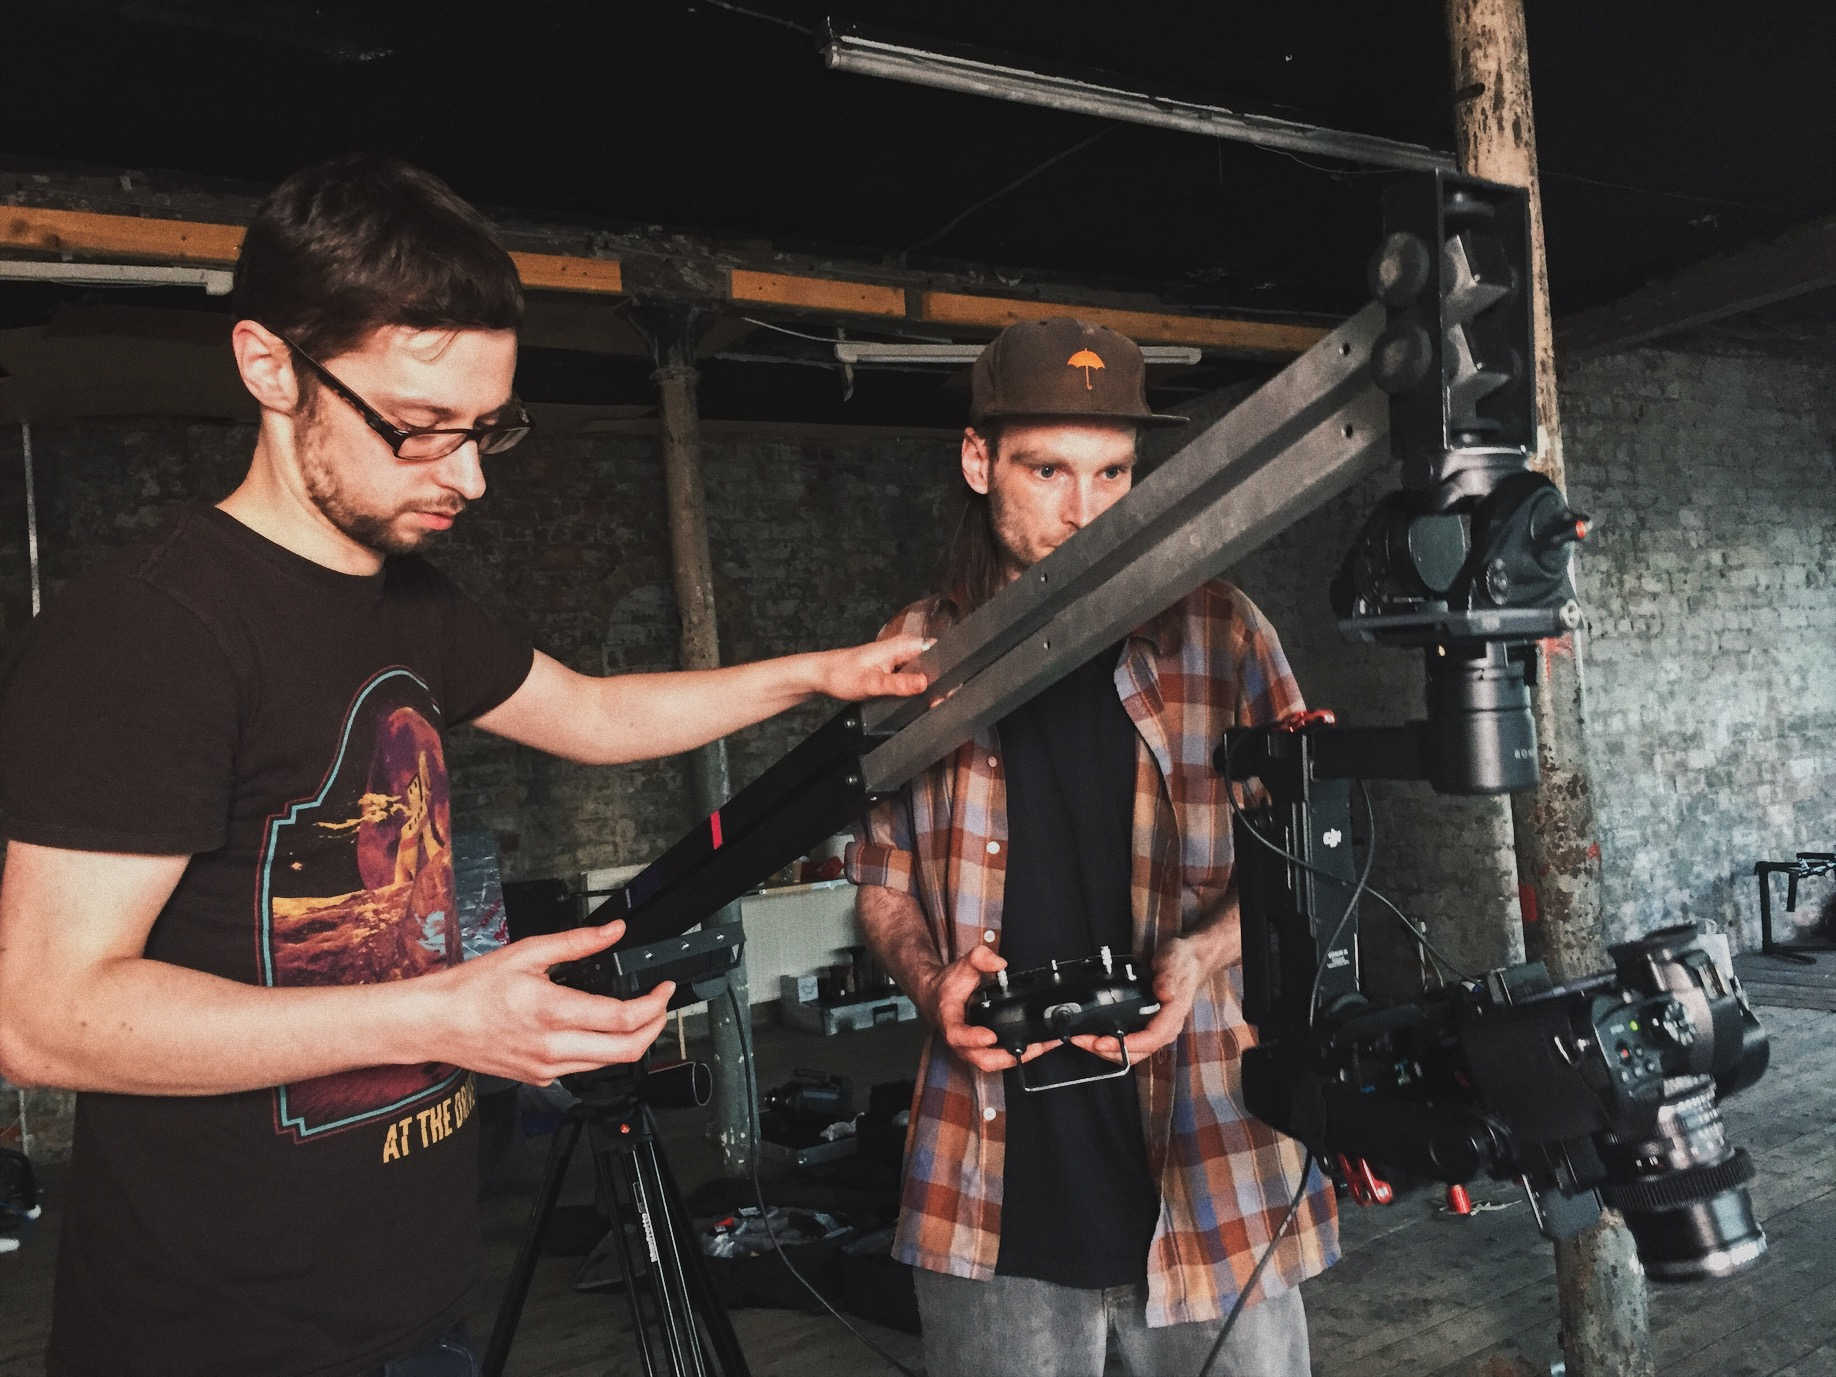 Director of Photography Andrew O'Connor (L) and 1st AC Andy MacDonald, using the light weight camera system used to create the unique camera movement of From When I Wake The Want Is